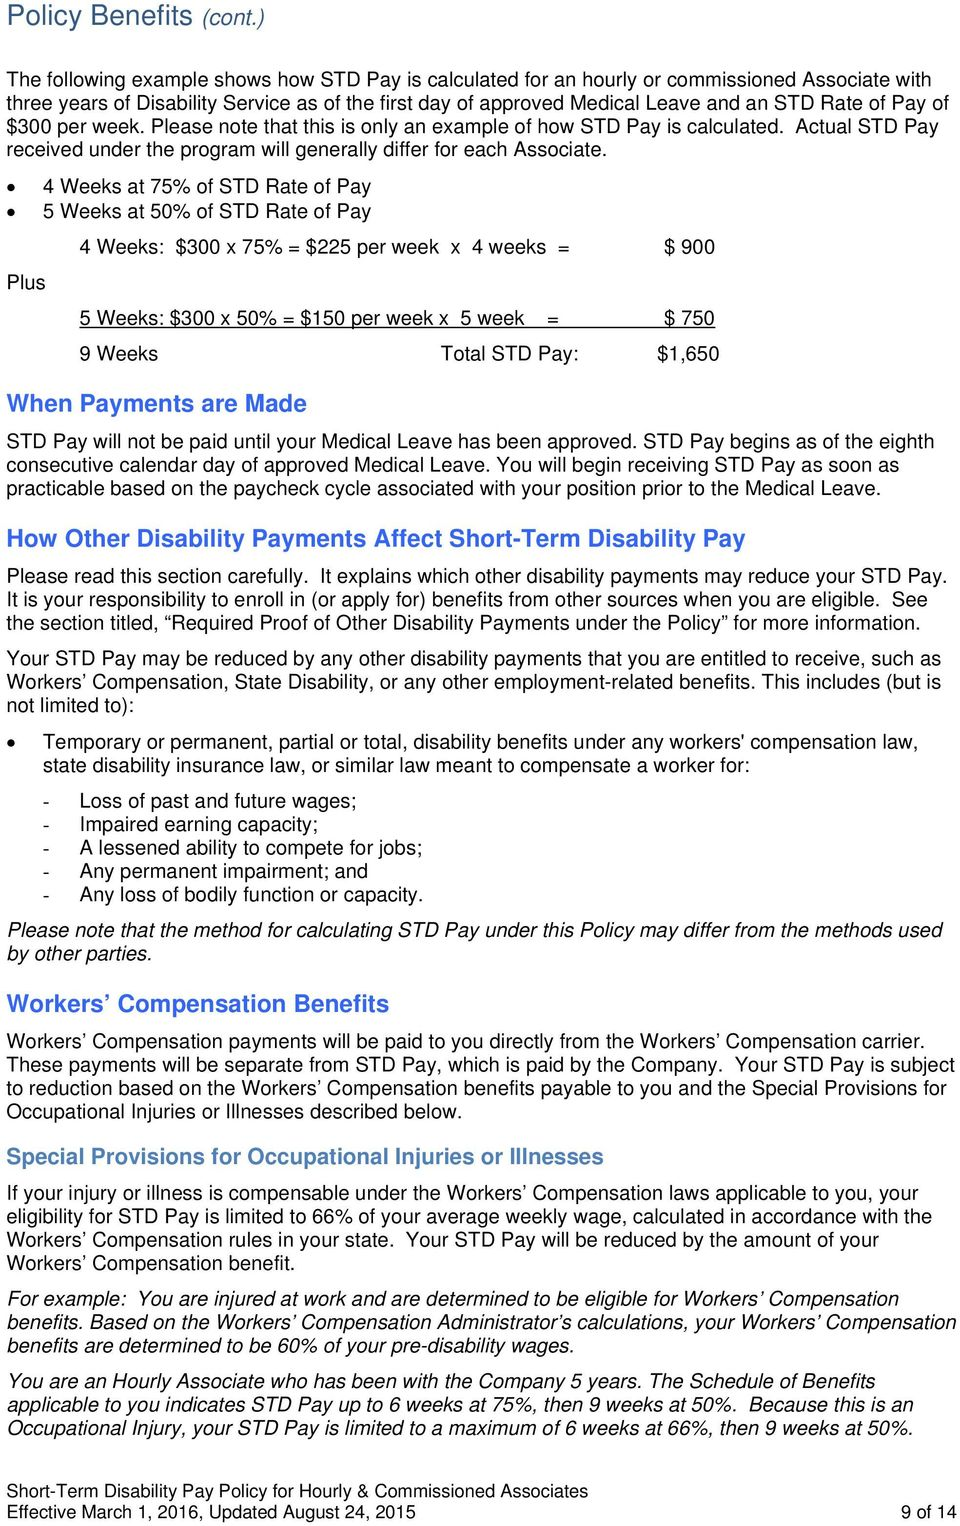 Pay of $300 per week. Please note that this is only an example of how STD Pay is calculated. Actual STD Pay received under the program will generally differ for each Associate.